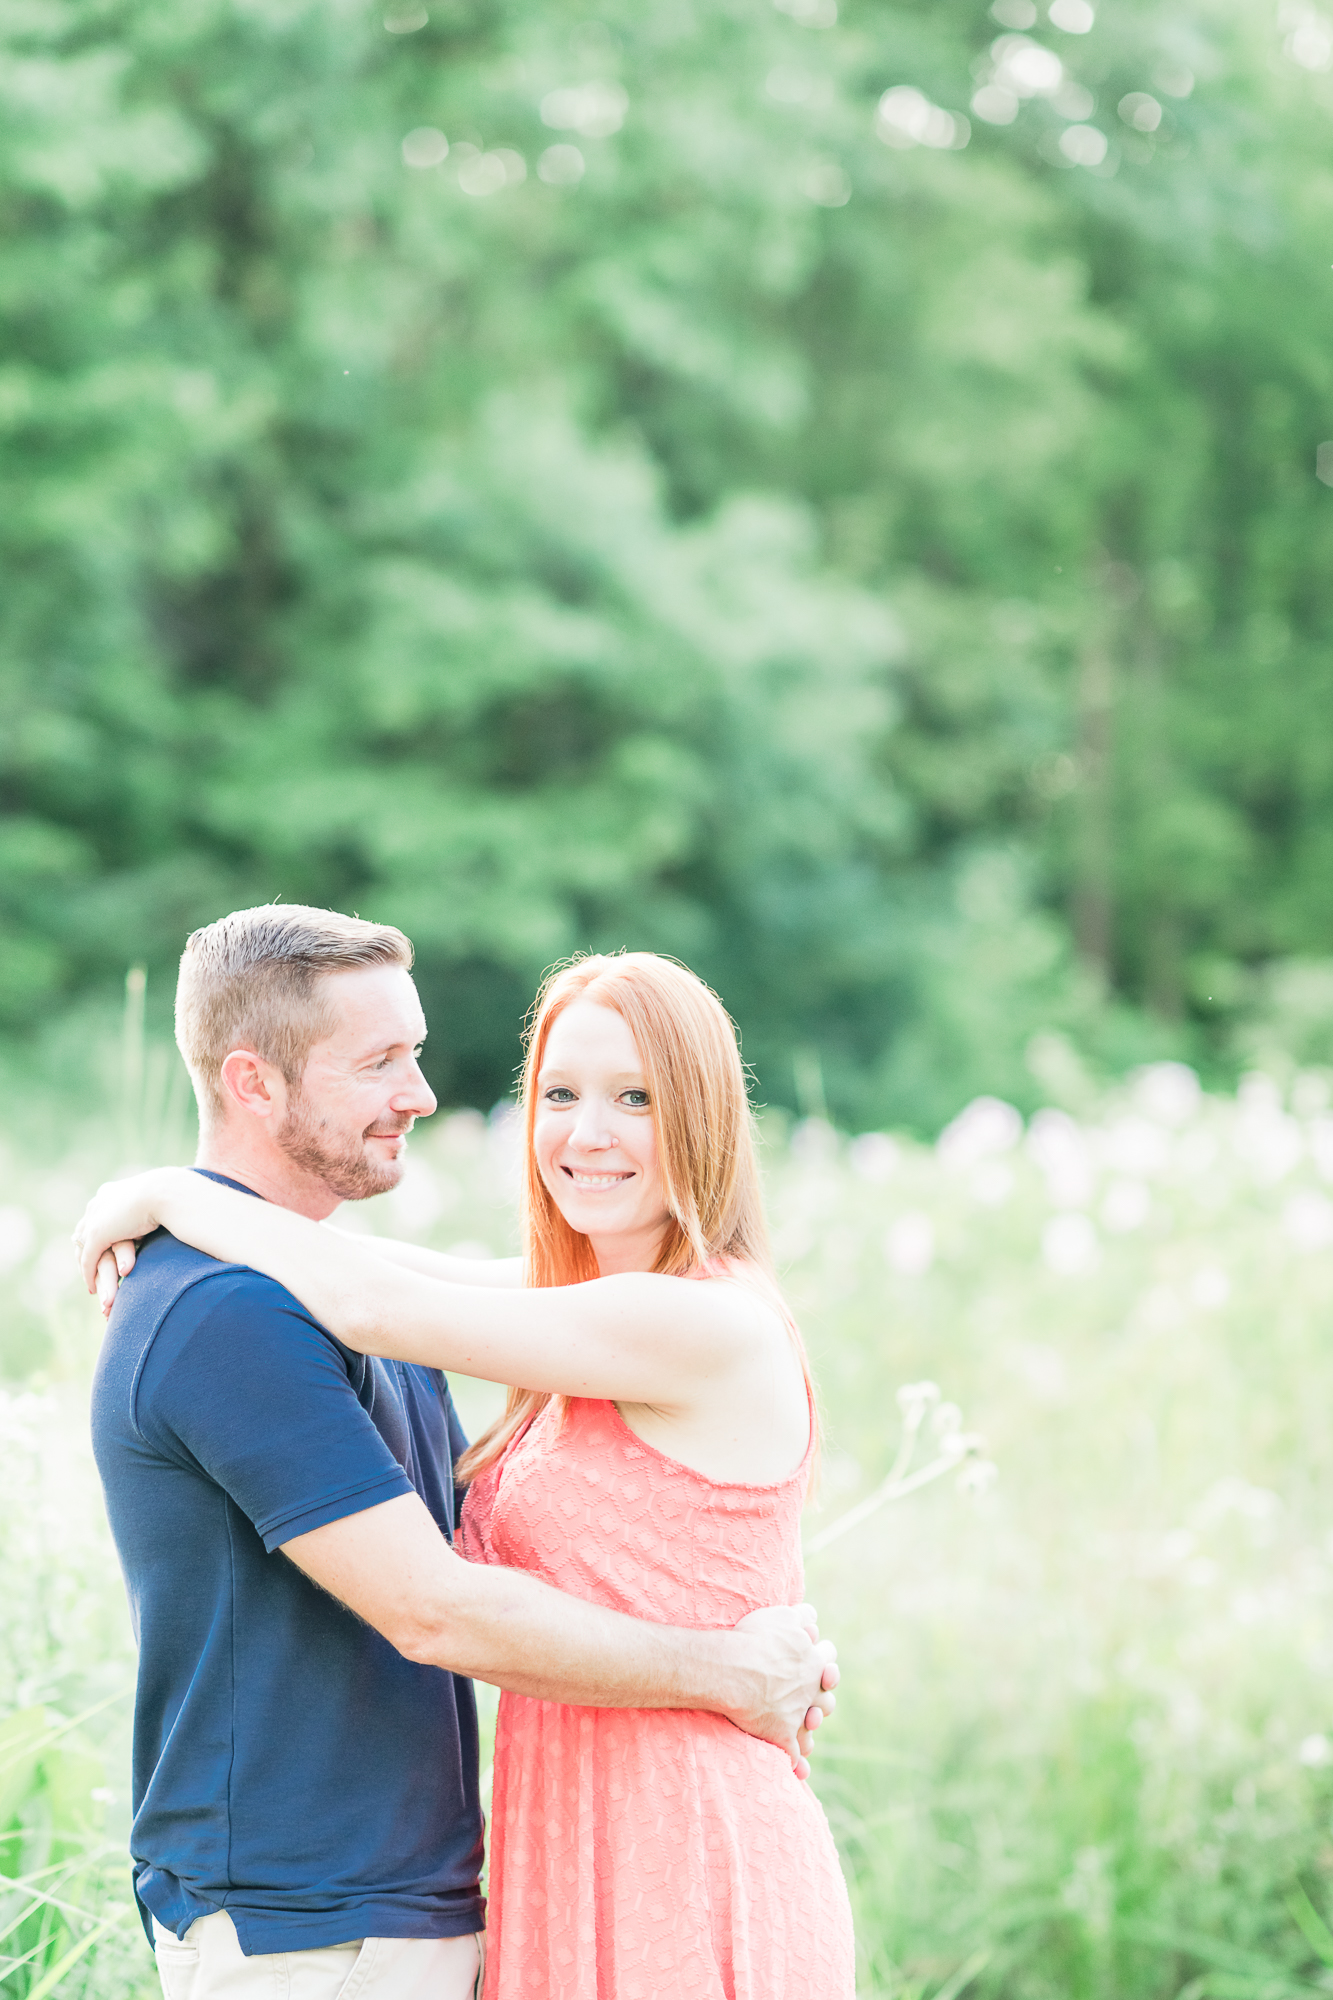 AB Favorites_Katy+Brian_Engagement Session_Brecksville Reservation_Brecksville_Ohio-10.jpg